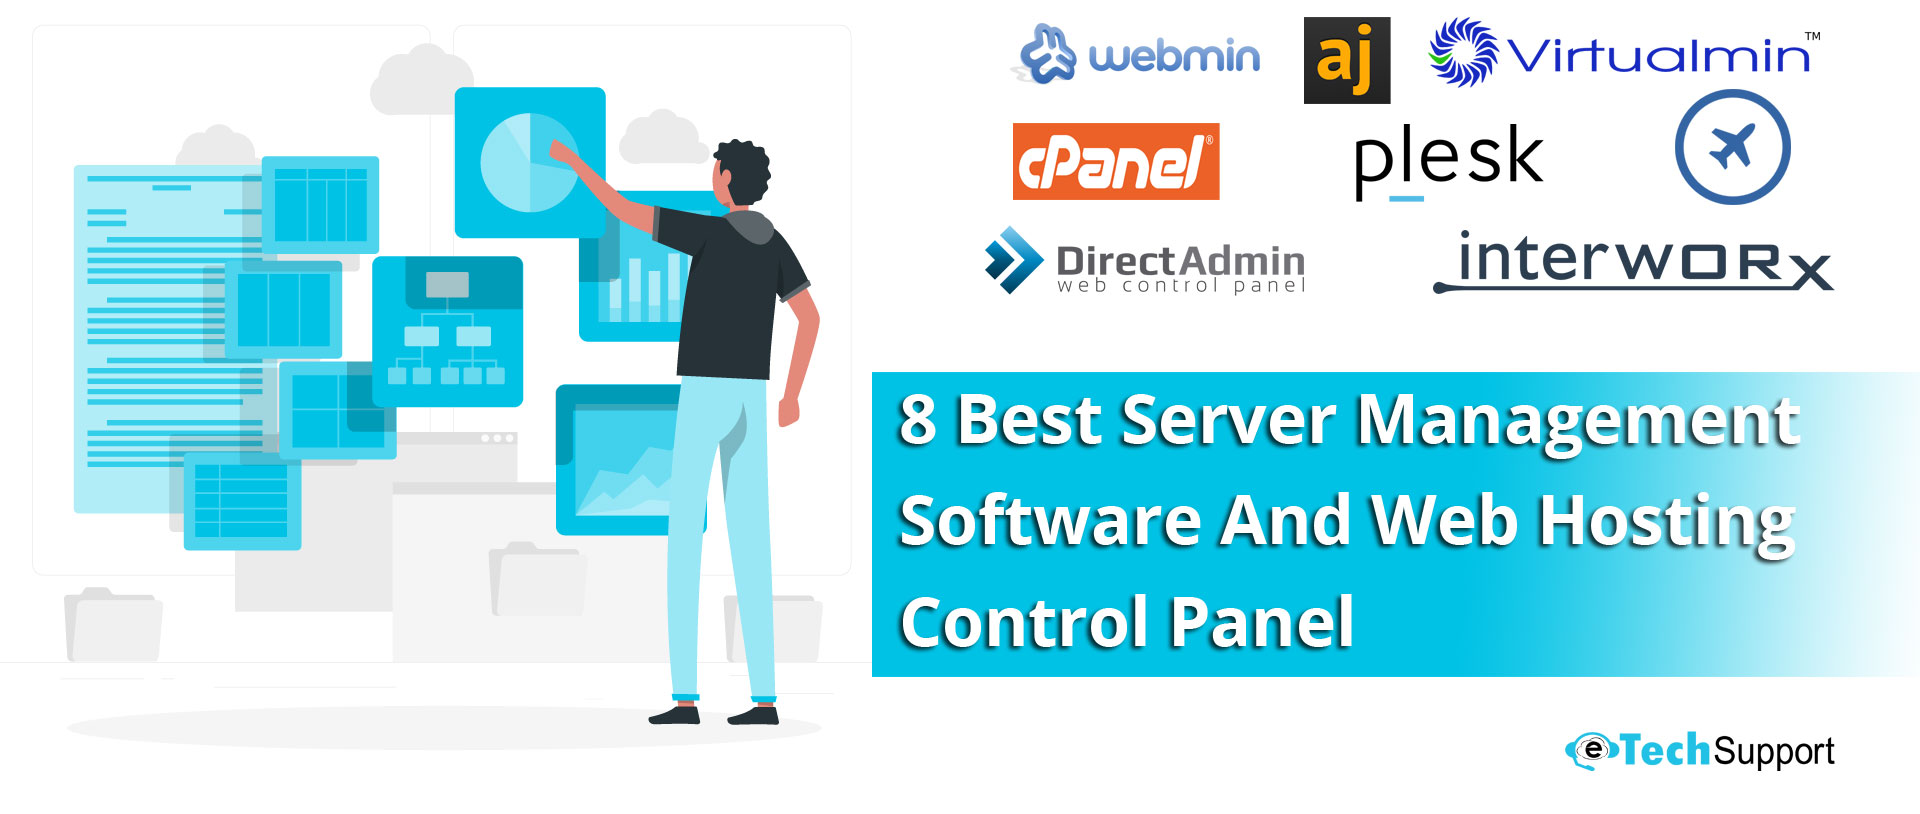 8-Best-Server-Management-Software-And-Web-Hosting-Control-Panel